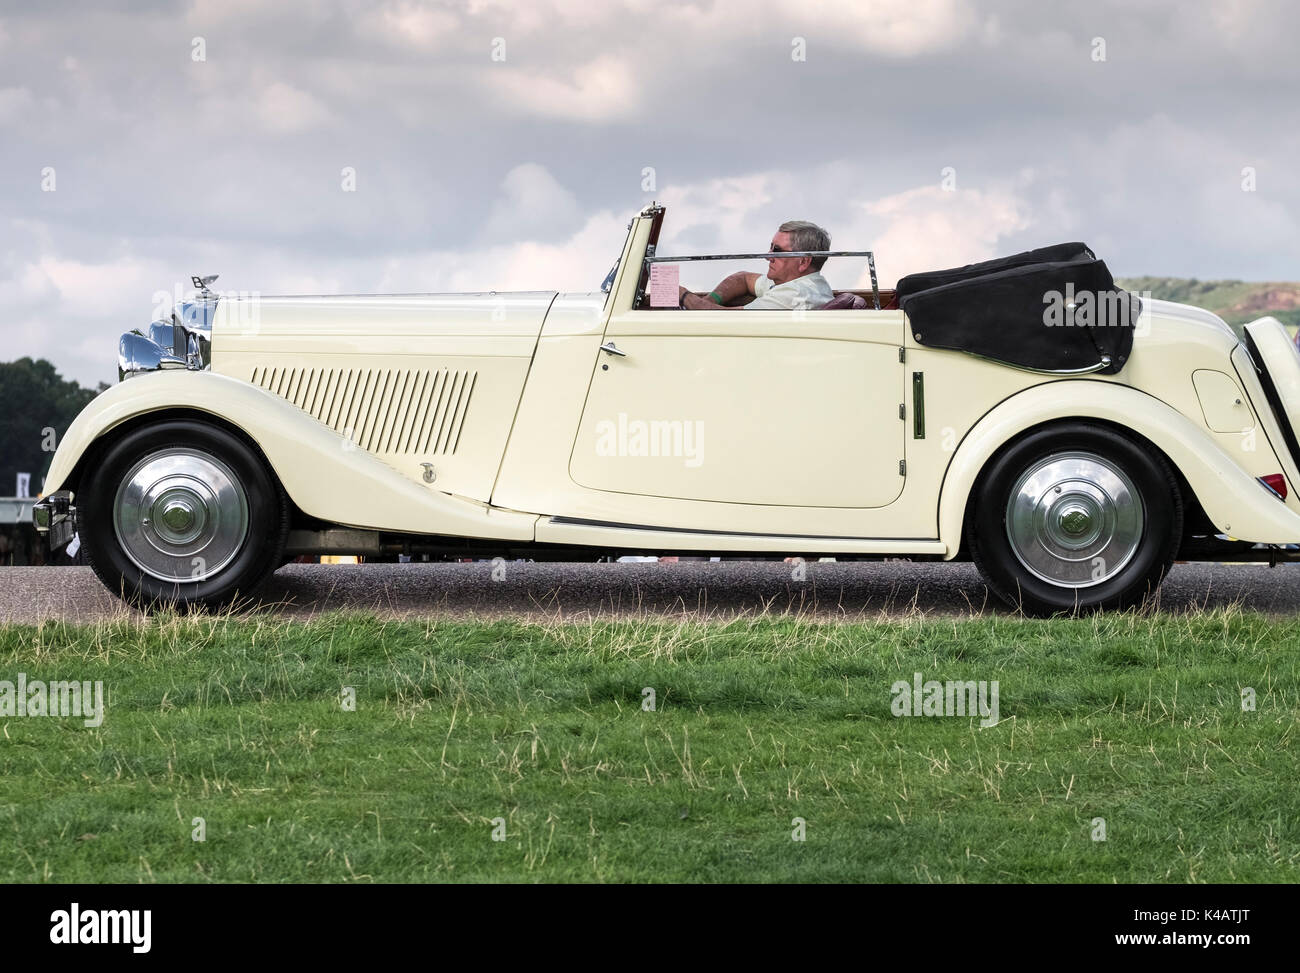 Open Top Car High Resolution Stock Photography And Images Alamy